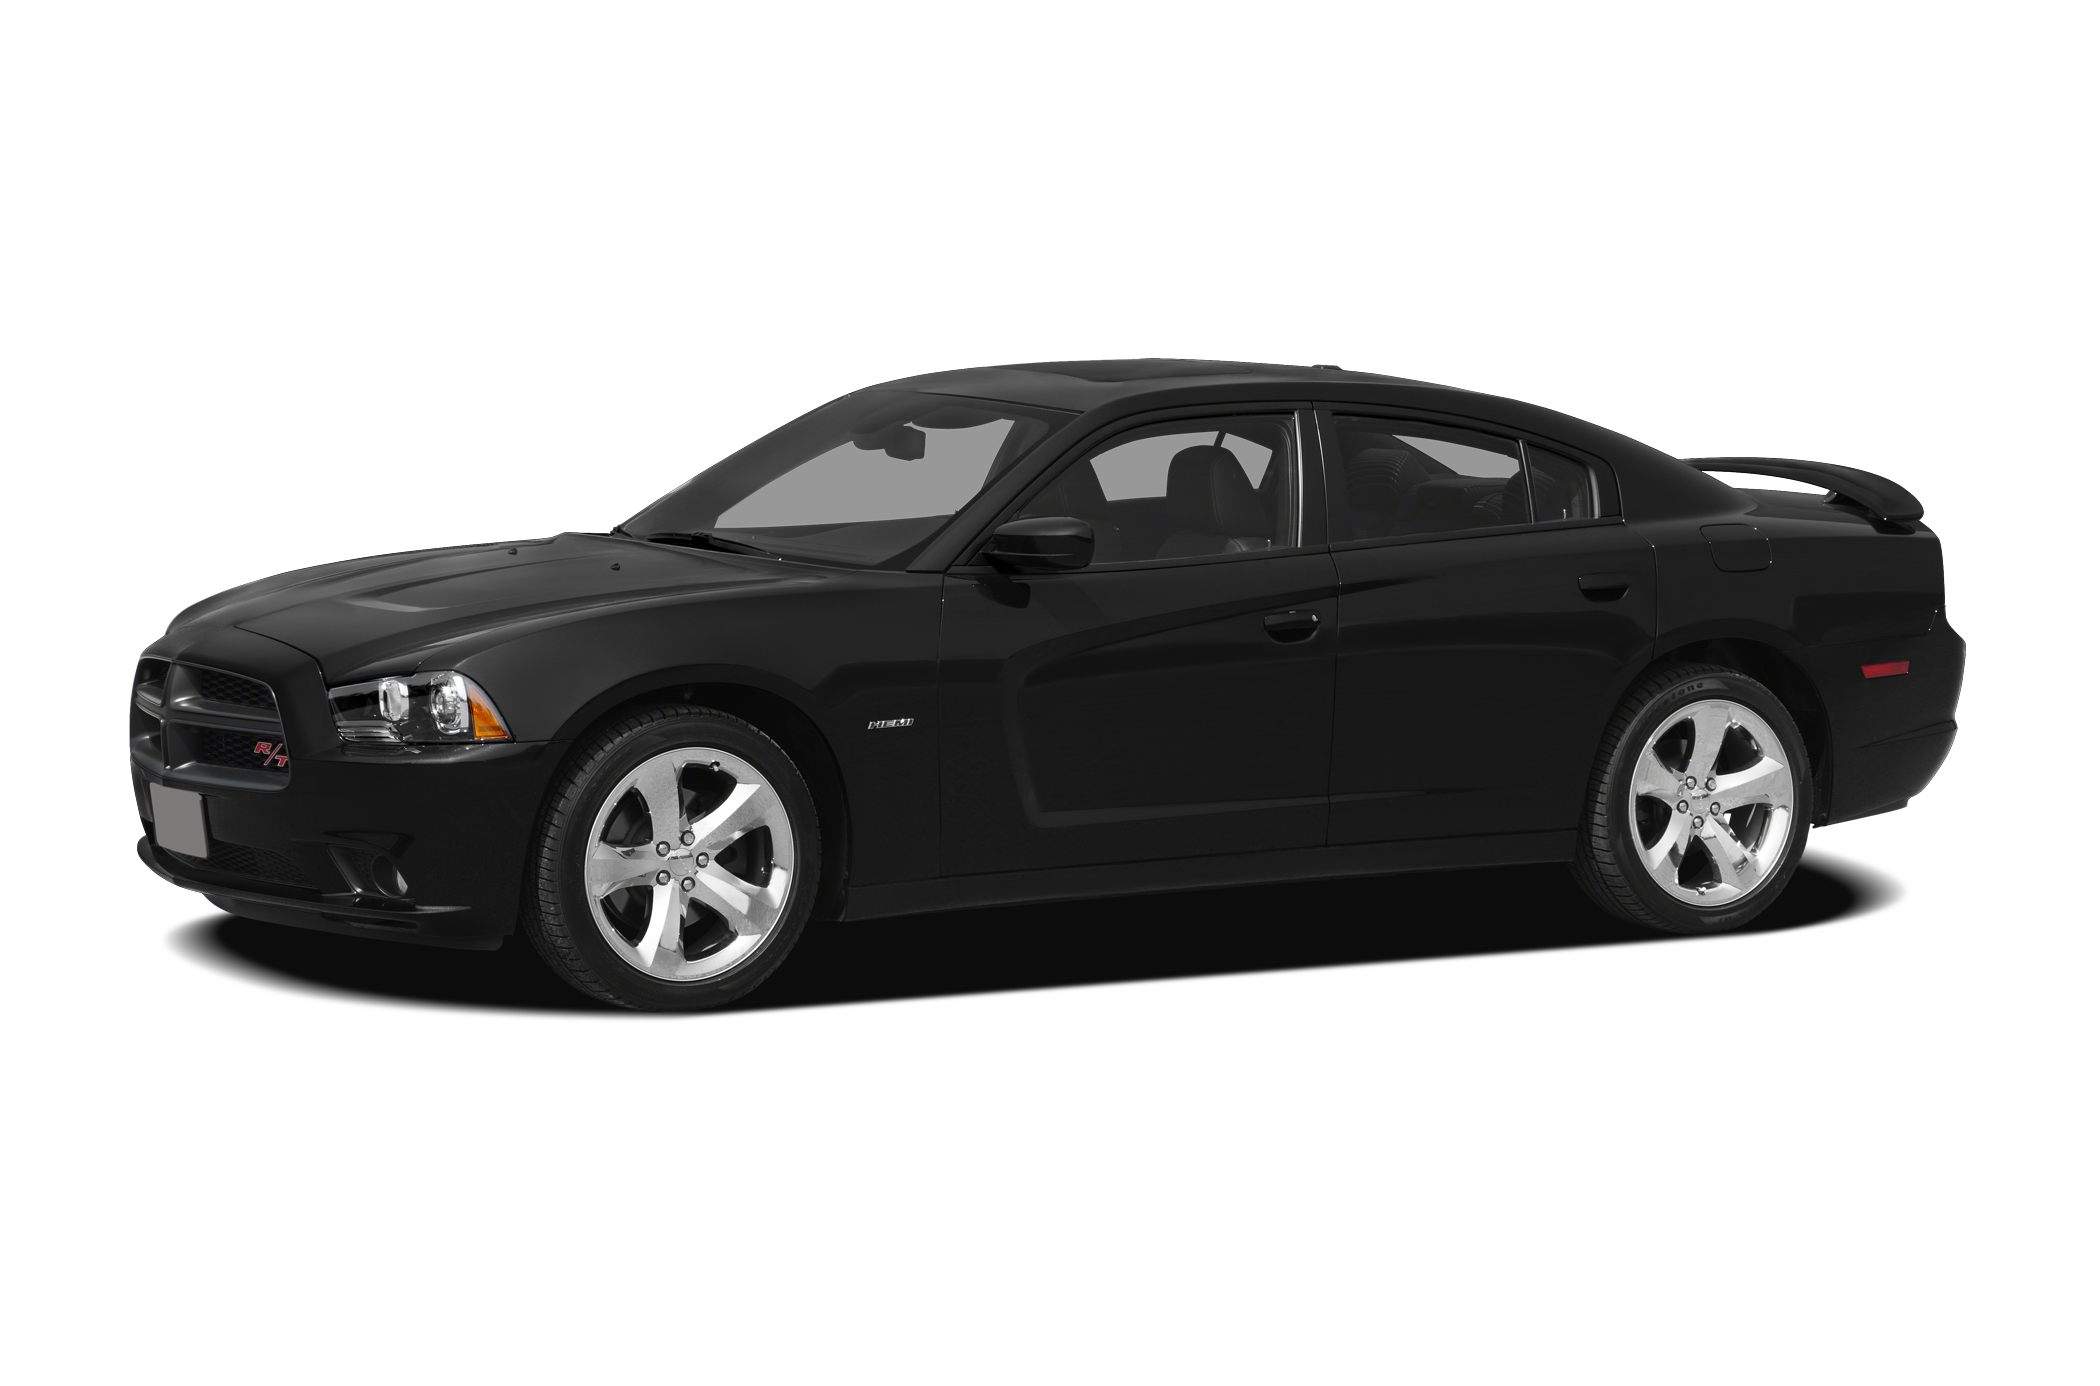 2011 Dodge Charger R/T Sedan for sale in Orlando for $26,725 with 21,000 miles